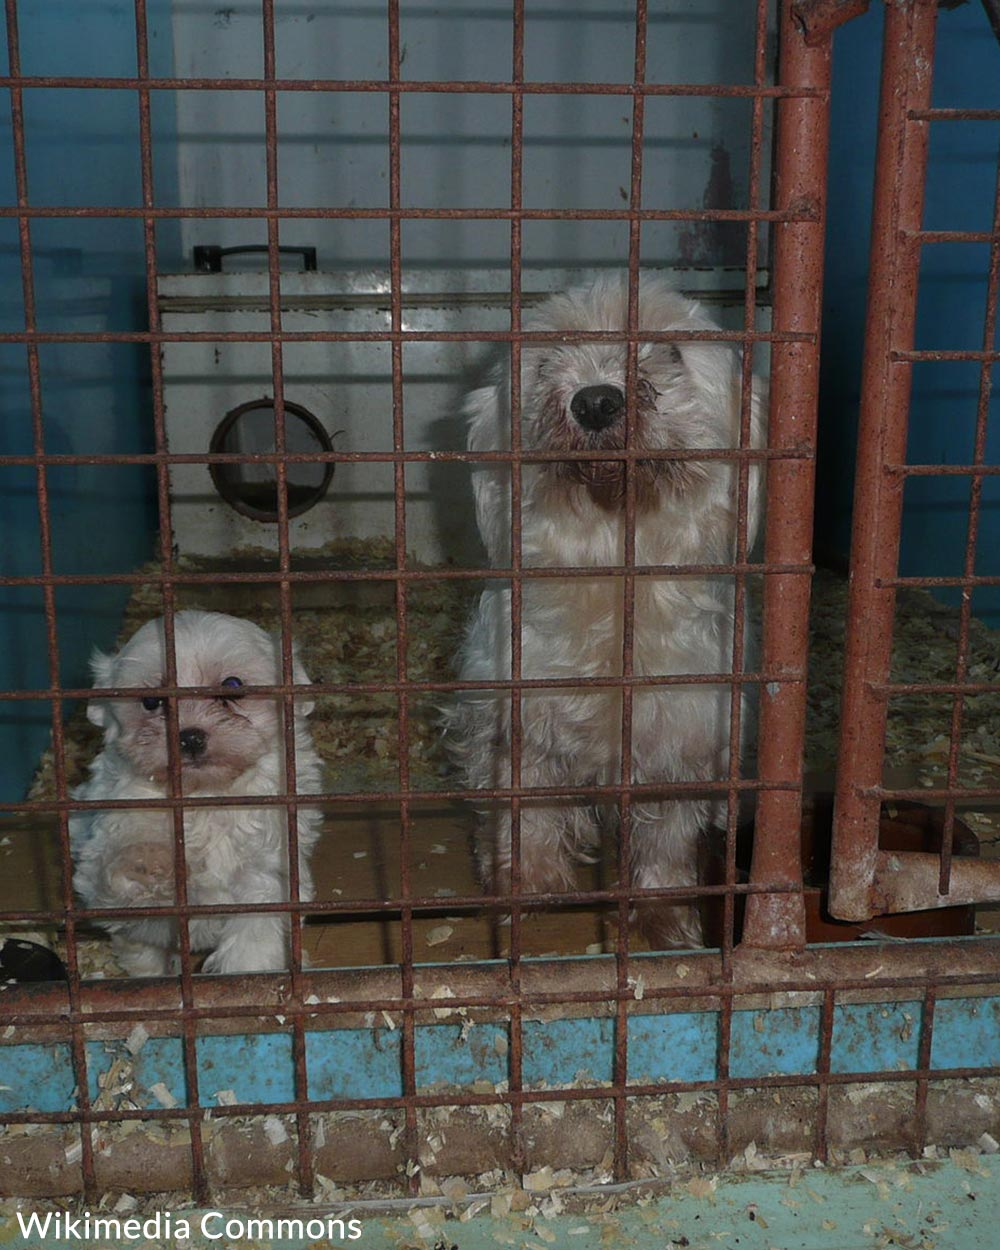 Animals in puppy mills are often raised with care for sanitation or health.